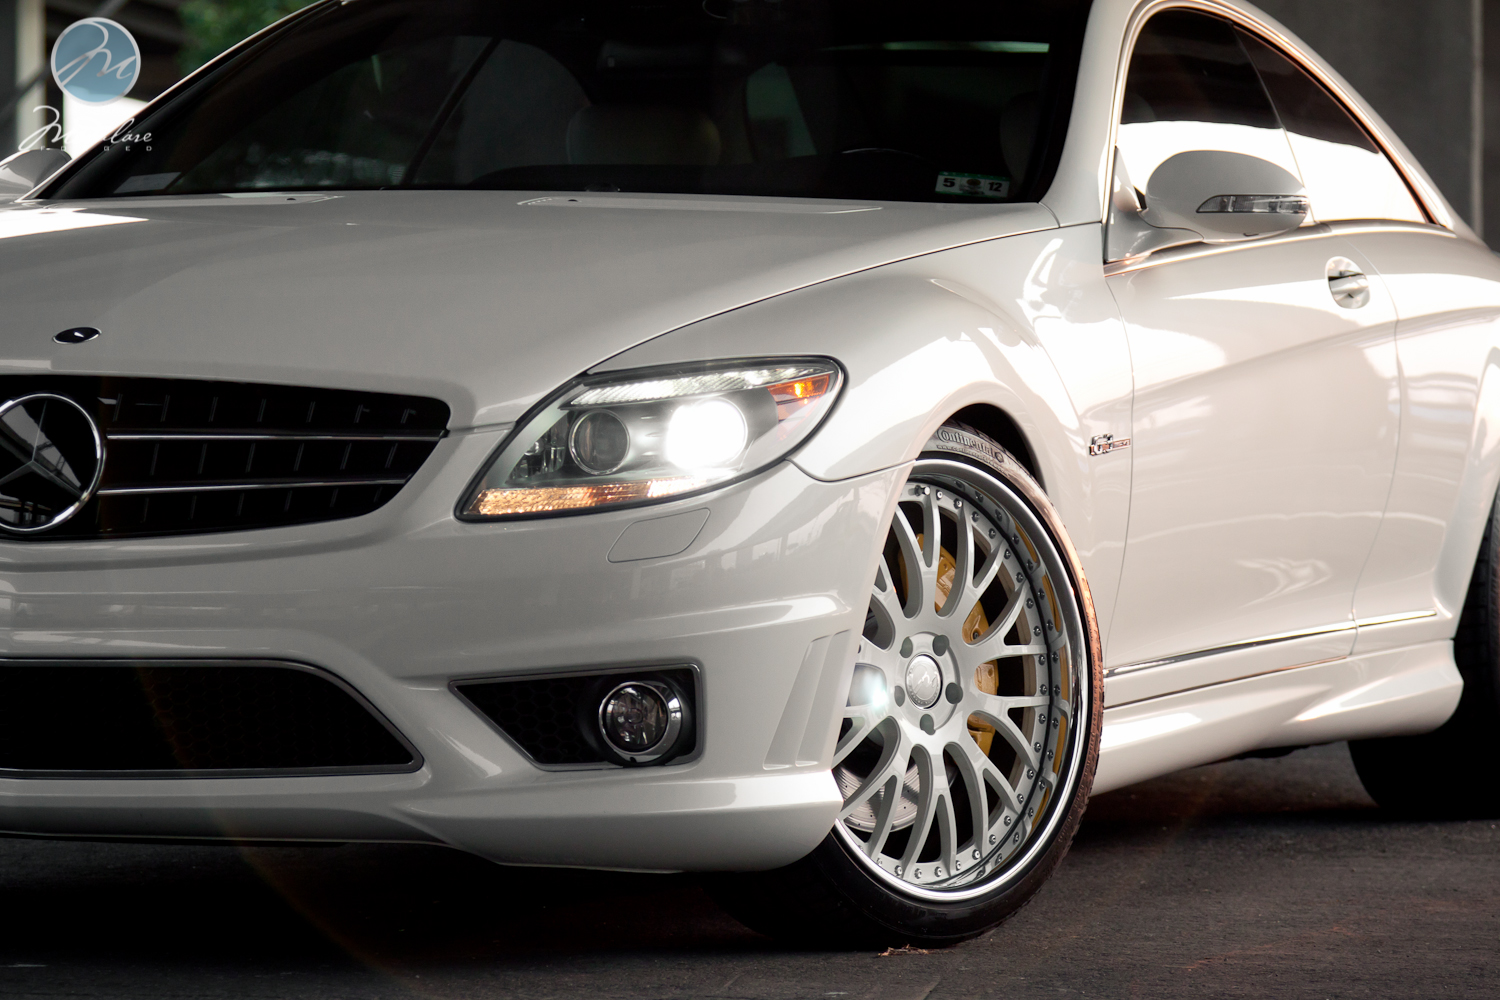 Professional shoot 2009 mbz cl63 amg with 21 modulare for 2009 mercedes benz cl63 amg